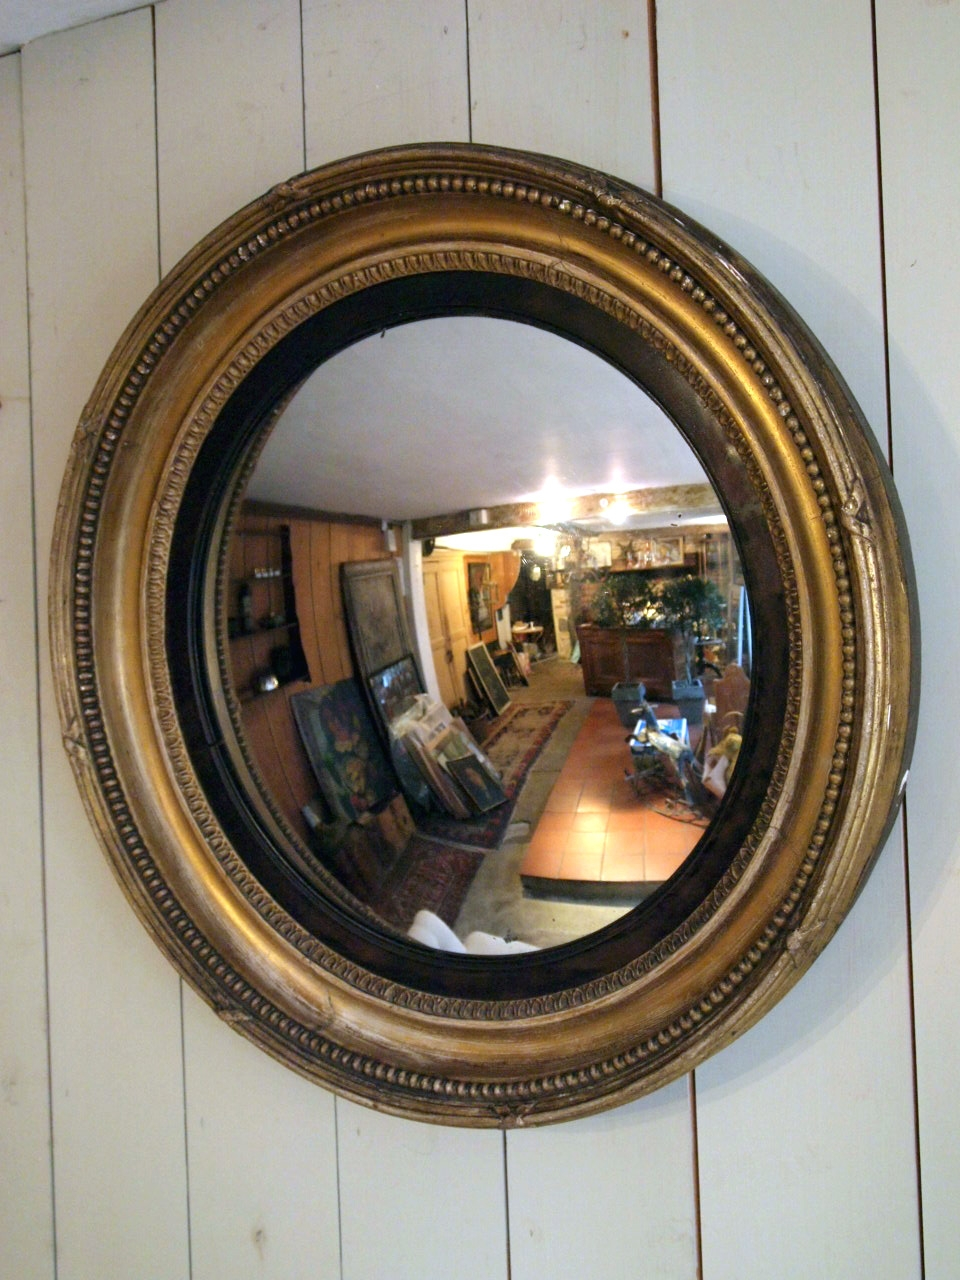 Antique Round Convex Mirror Puckhaber Decorative Antiques Regarding Decorative Convex Mirrors (Image 2 of 15)